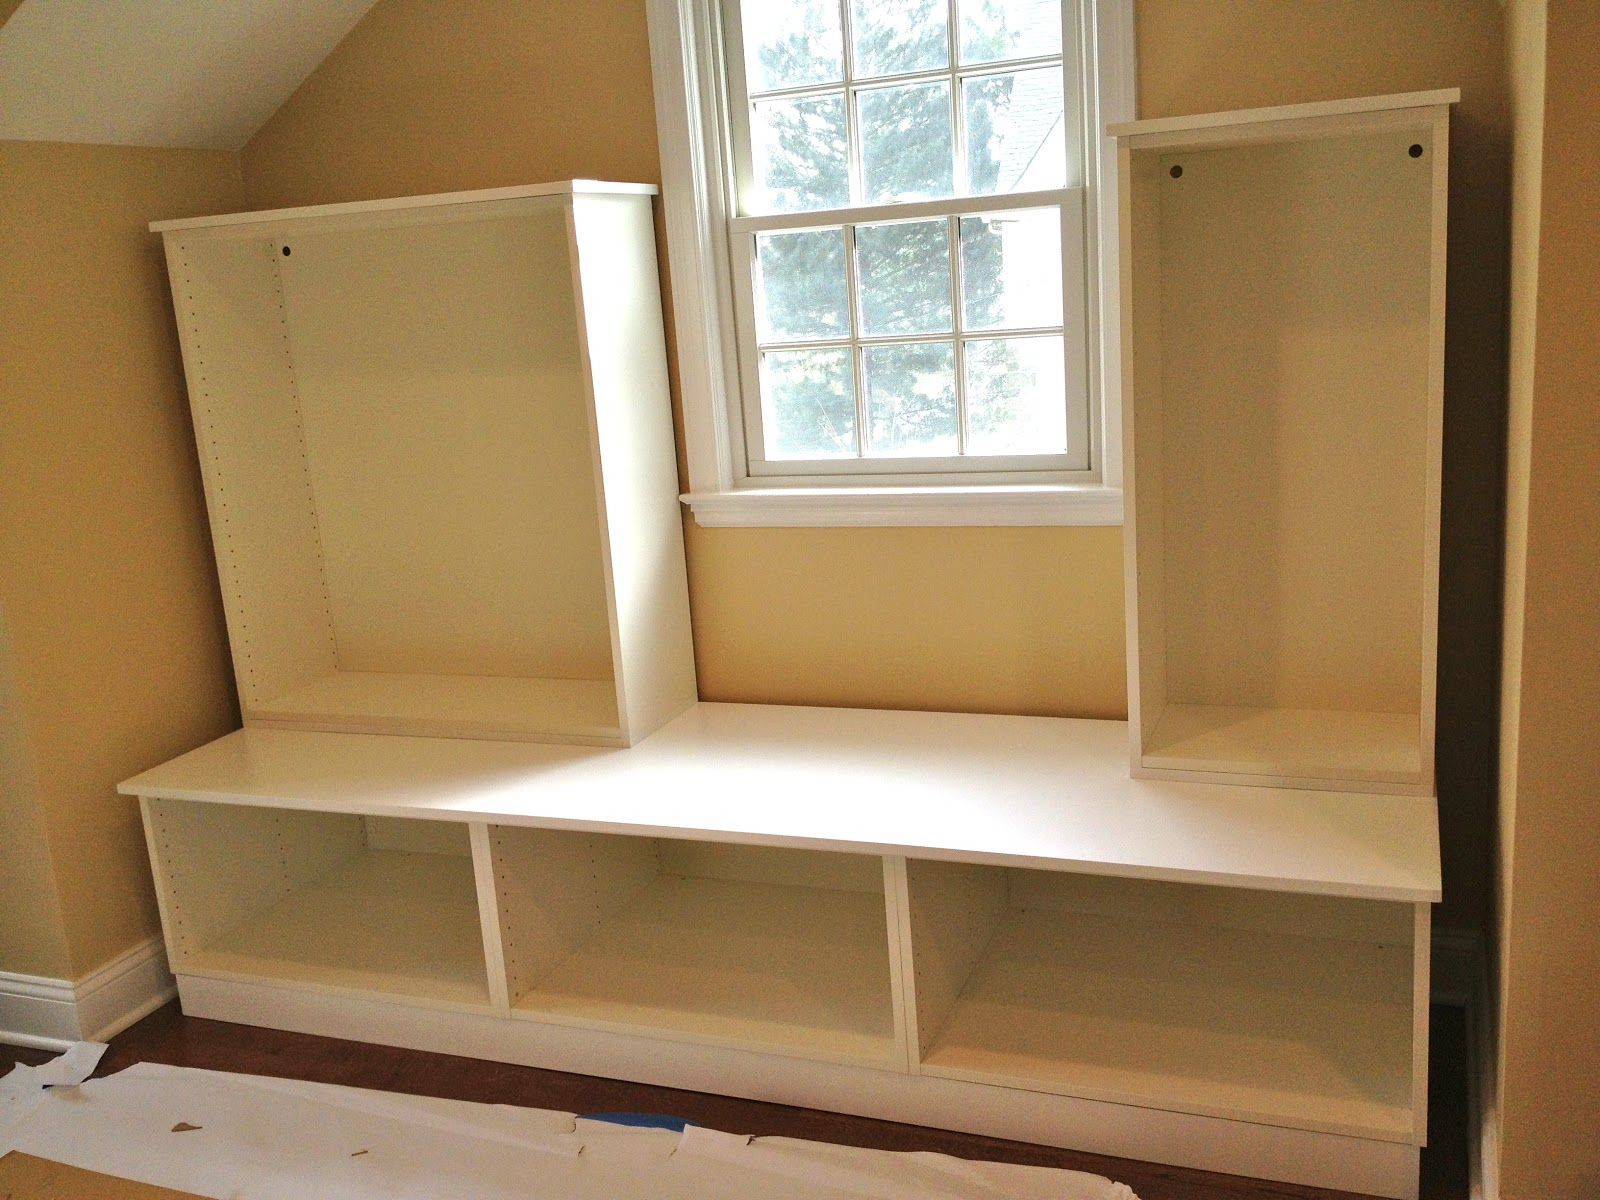 Diy Playroom Built Ins From Ikea Cabinets Jaime Costiglio